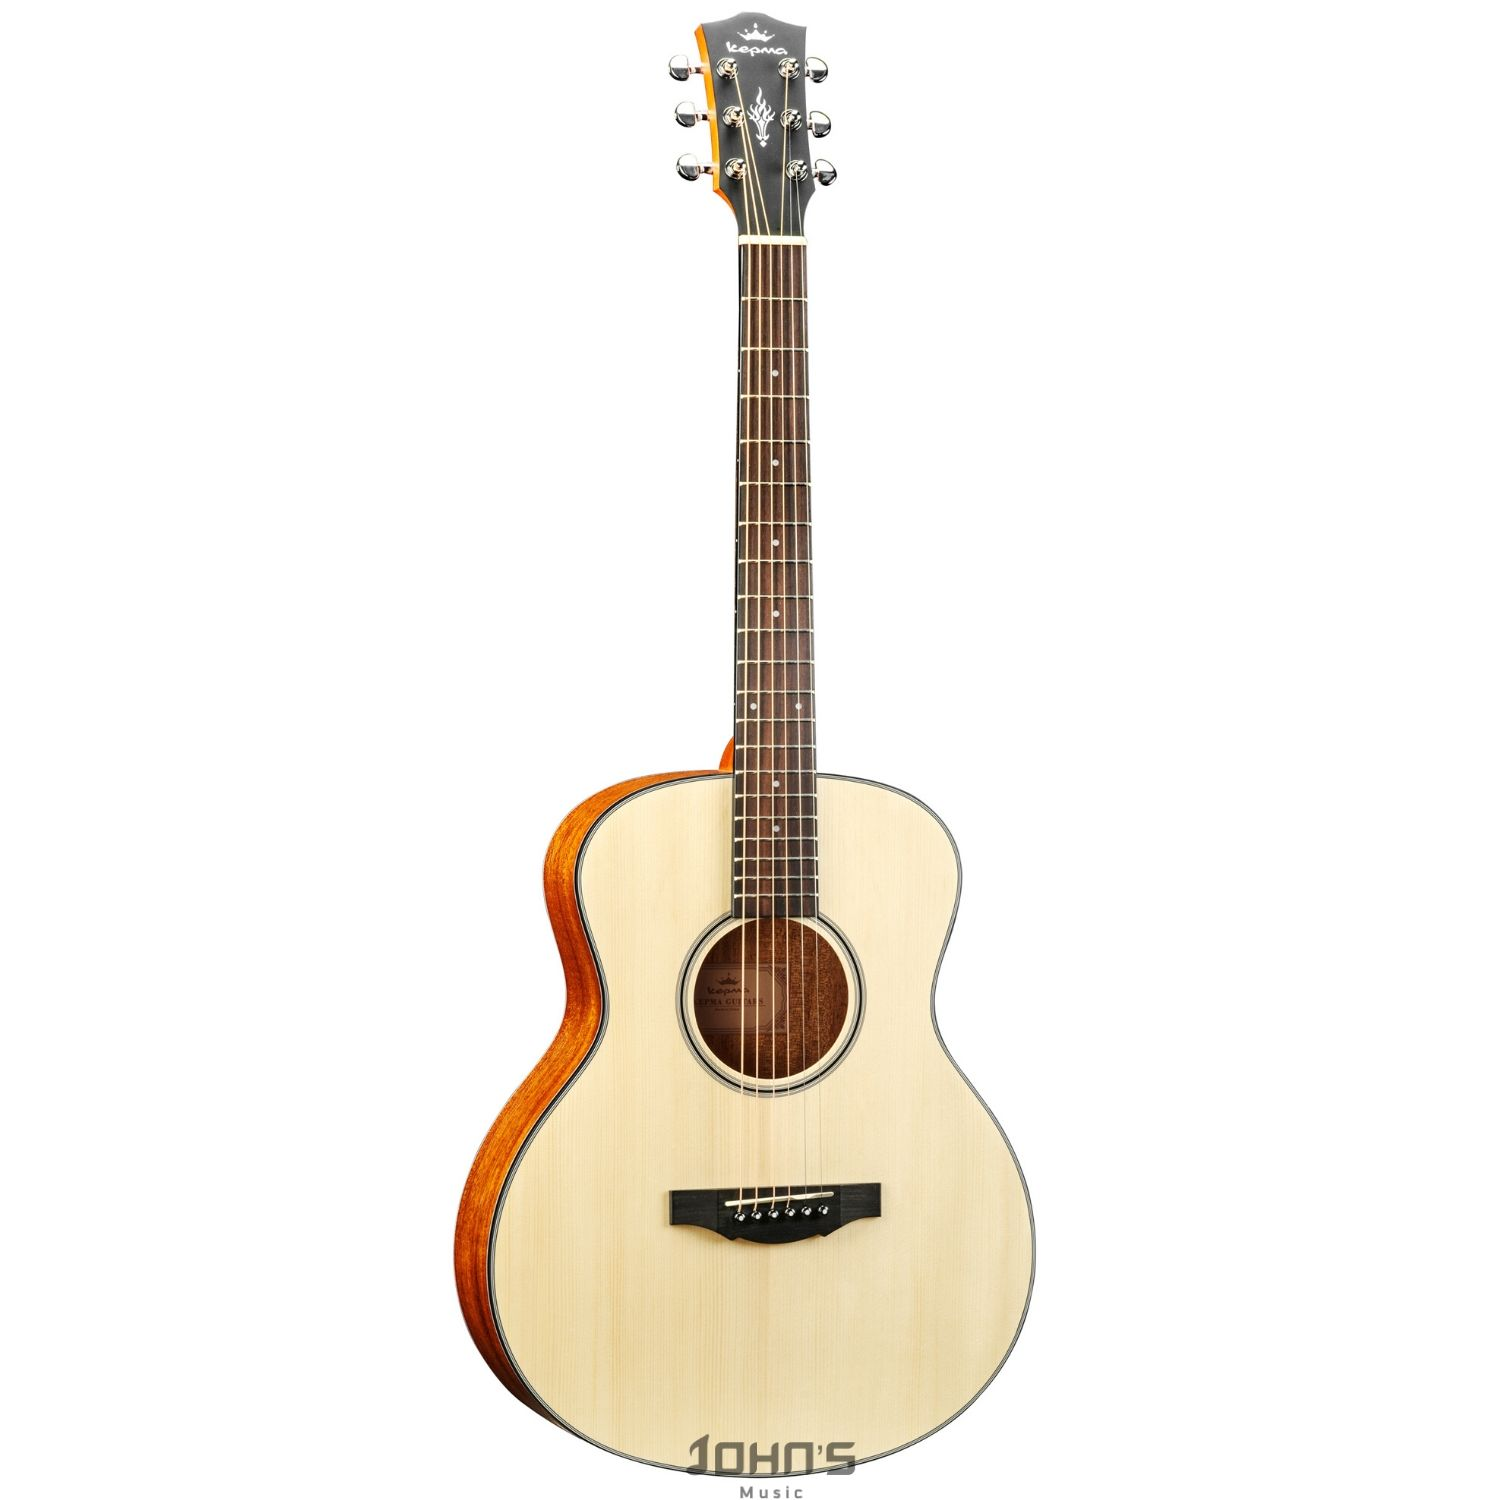 KEPMA ES36 Acoustic Guitar - Natural